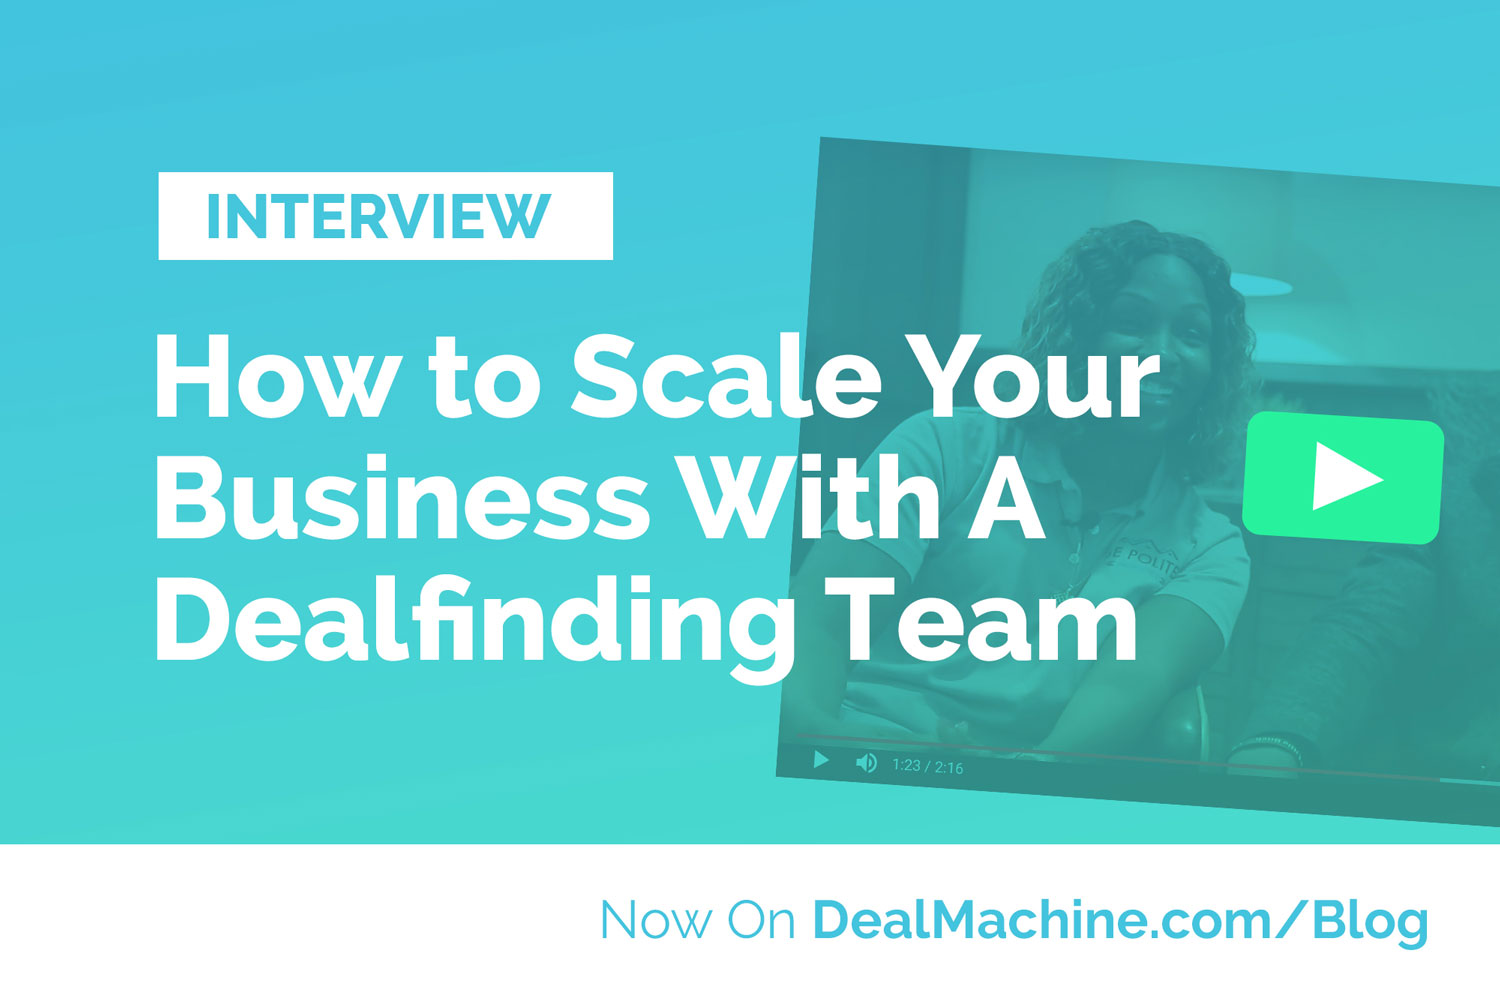 [Part 2] Real Estate Case Study: Setting Up Your DealFinding™ Team